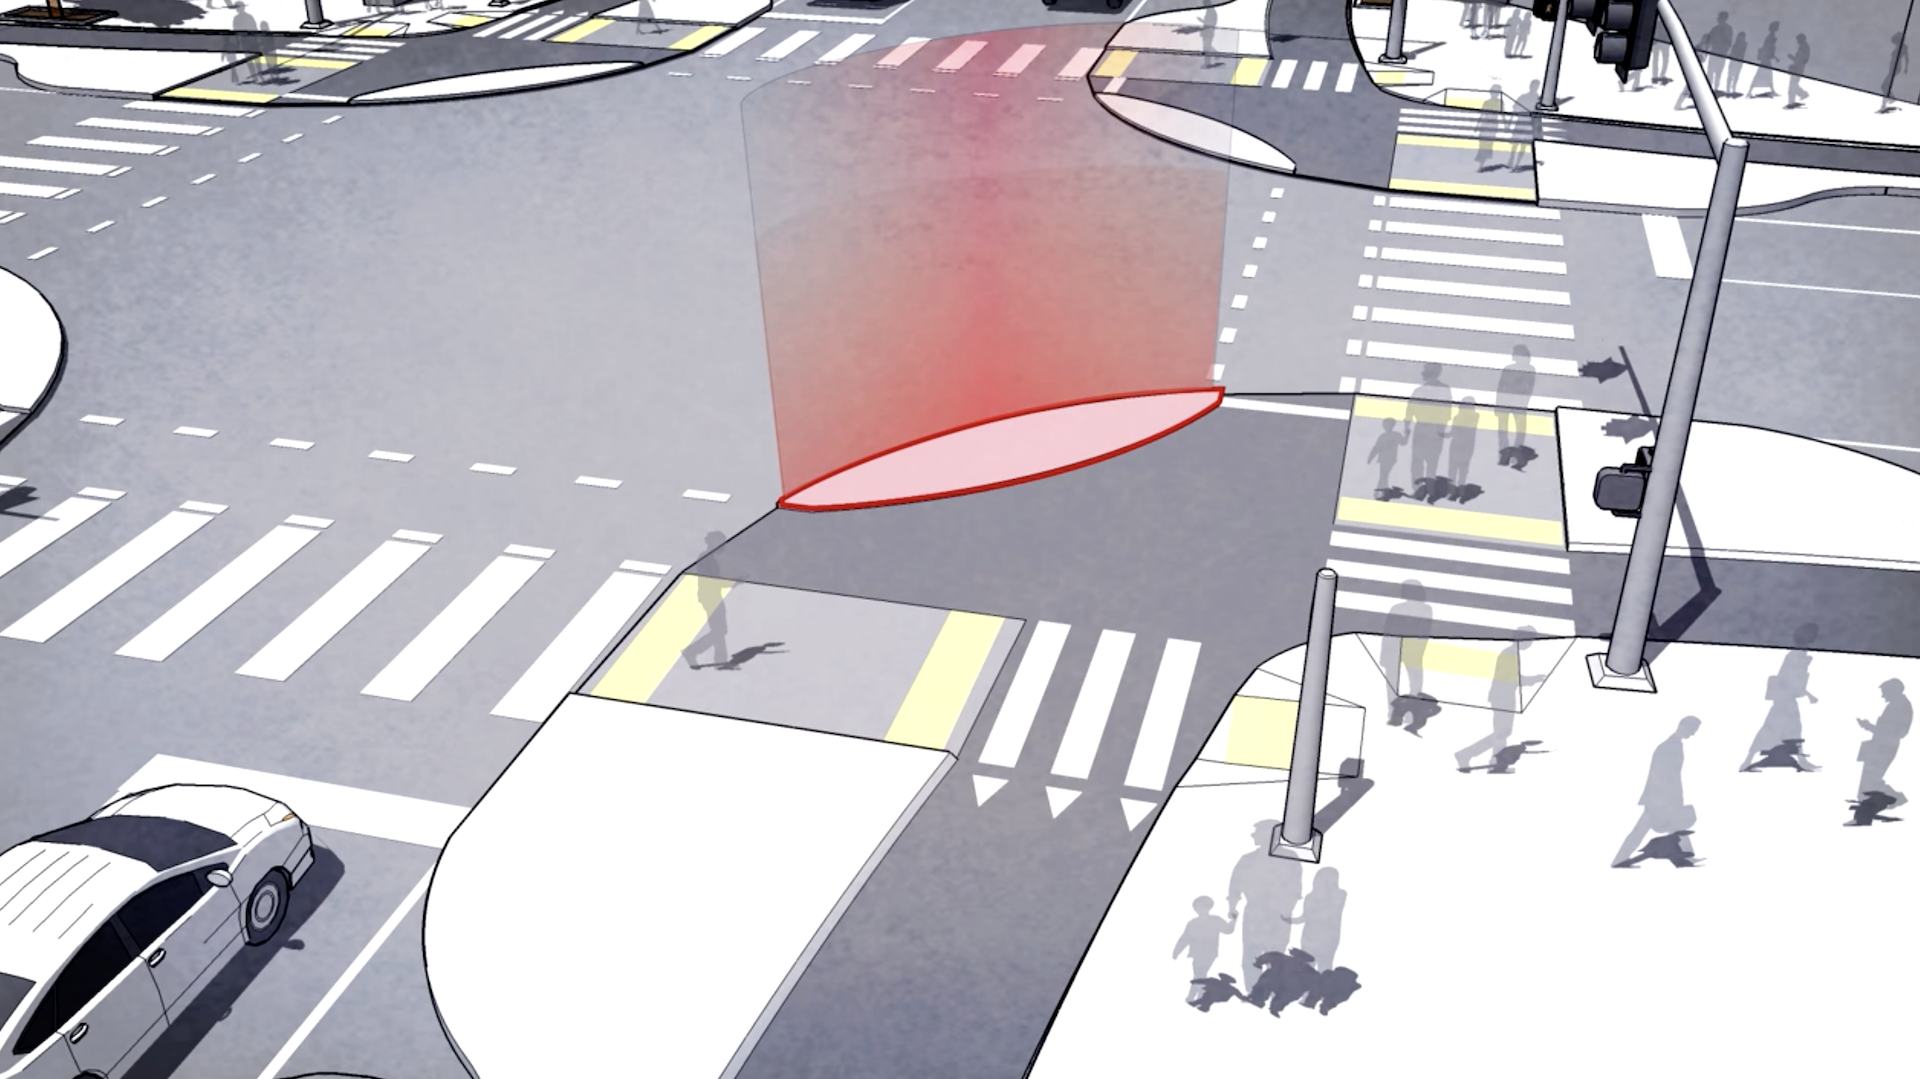 Rendering featuring concrete islands with wide corner radius to protect pedestrians